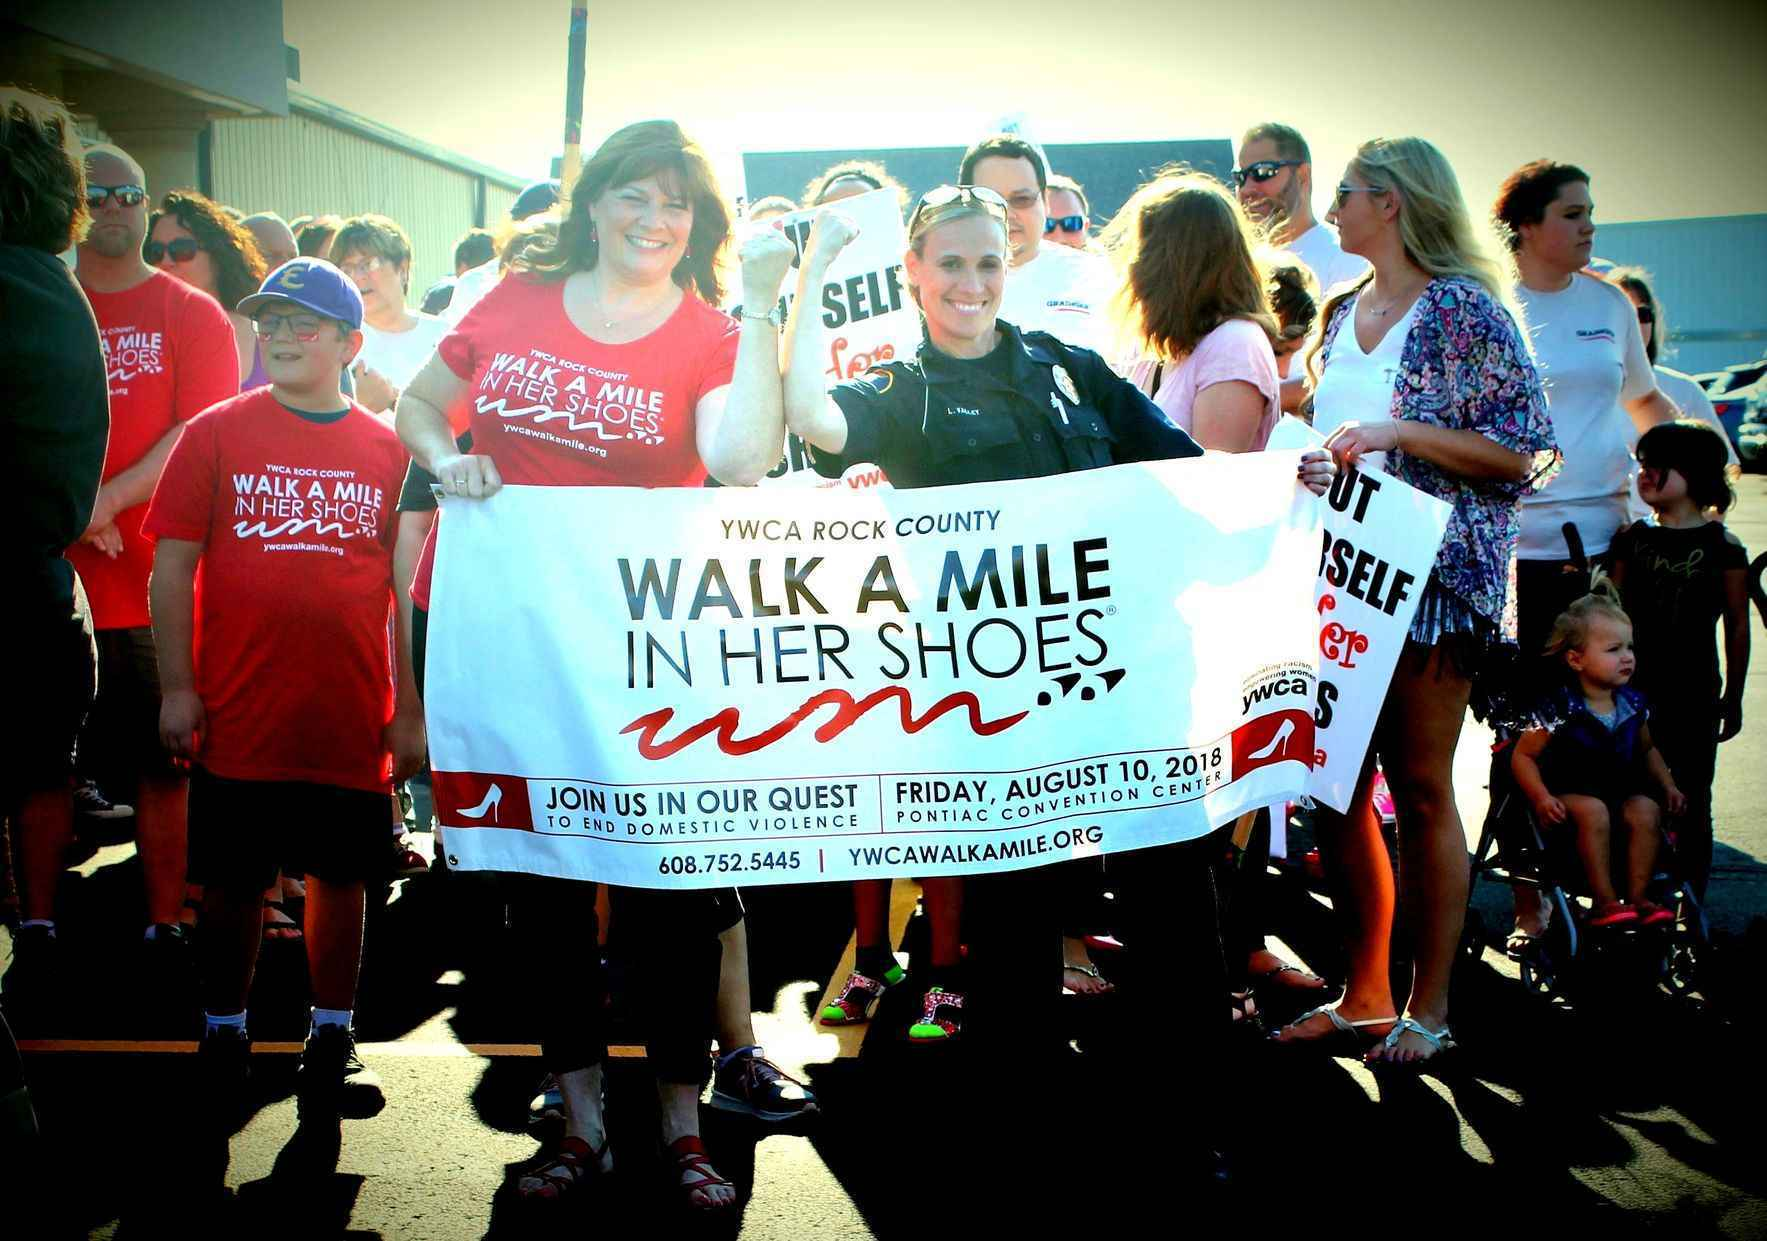 Walk A Mile In Her Shoes 2019 image